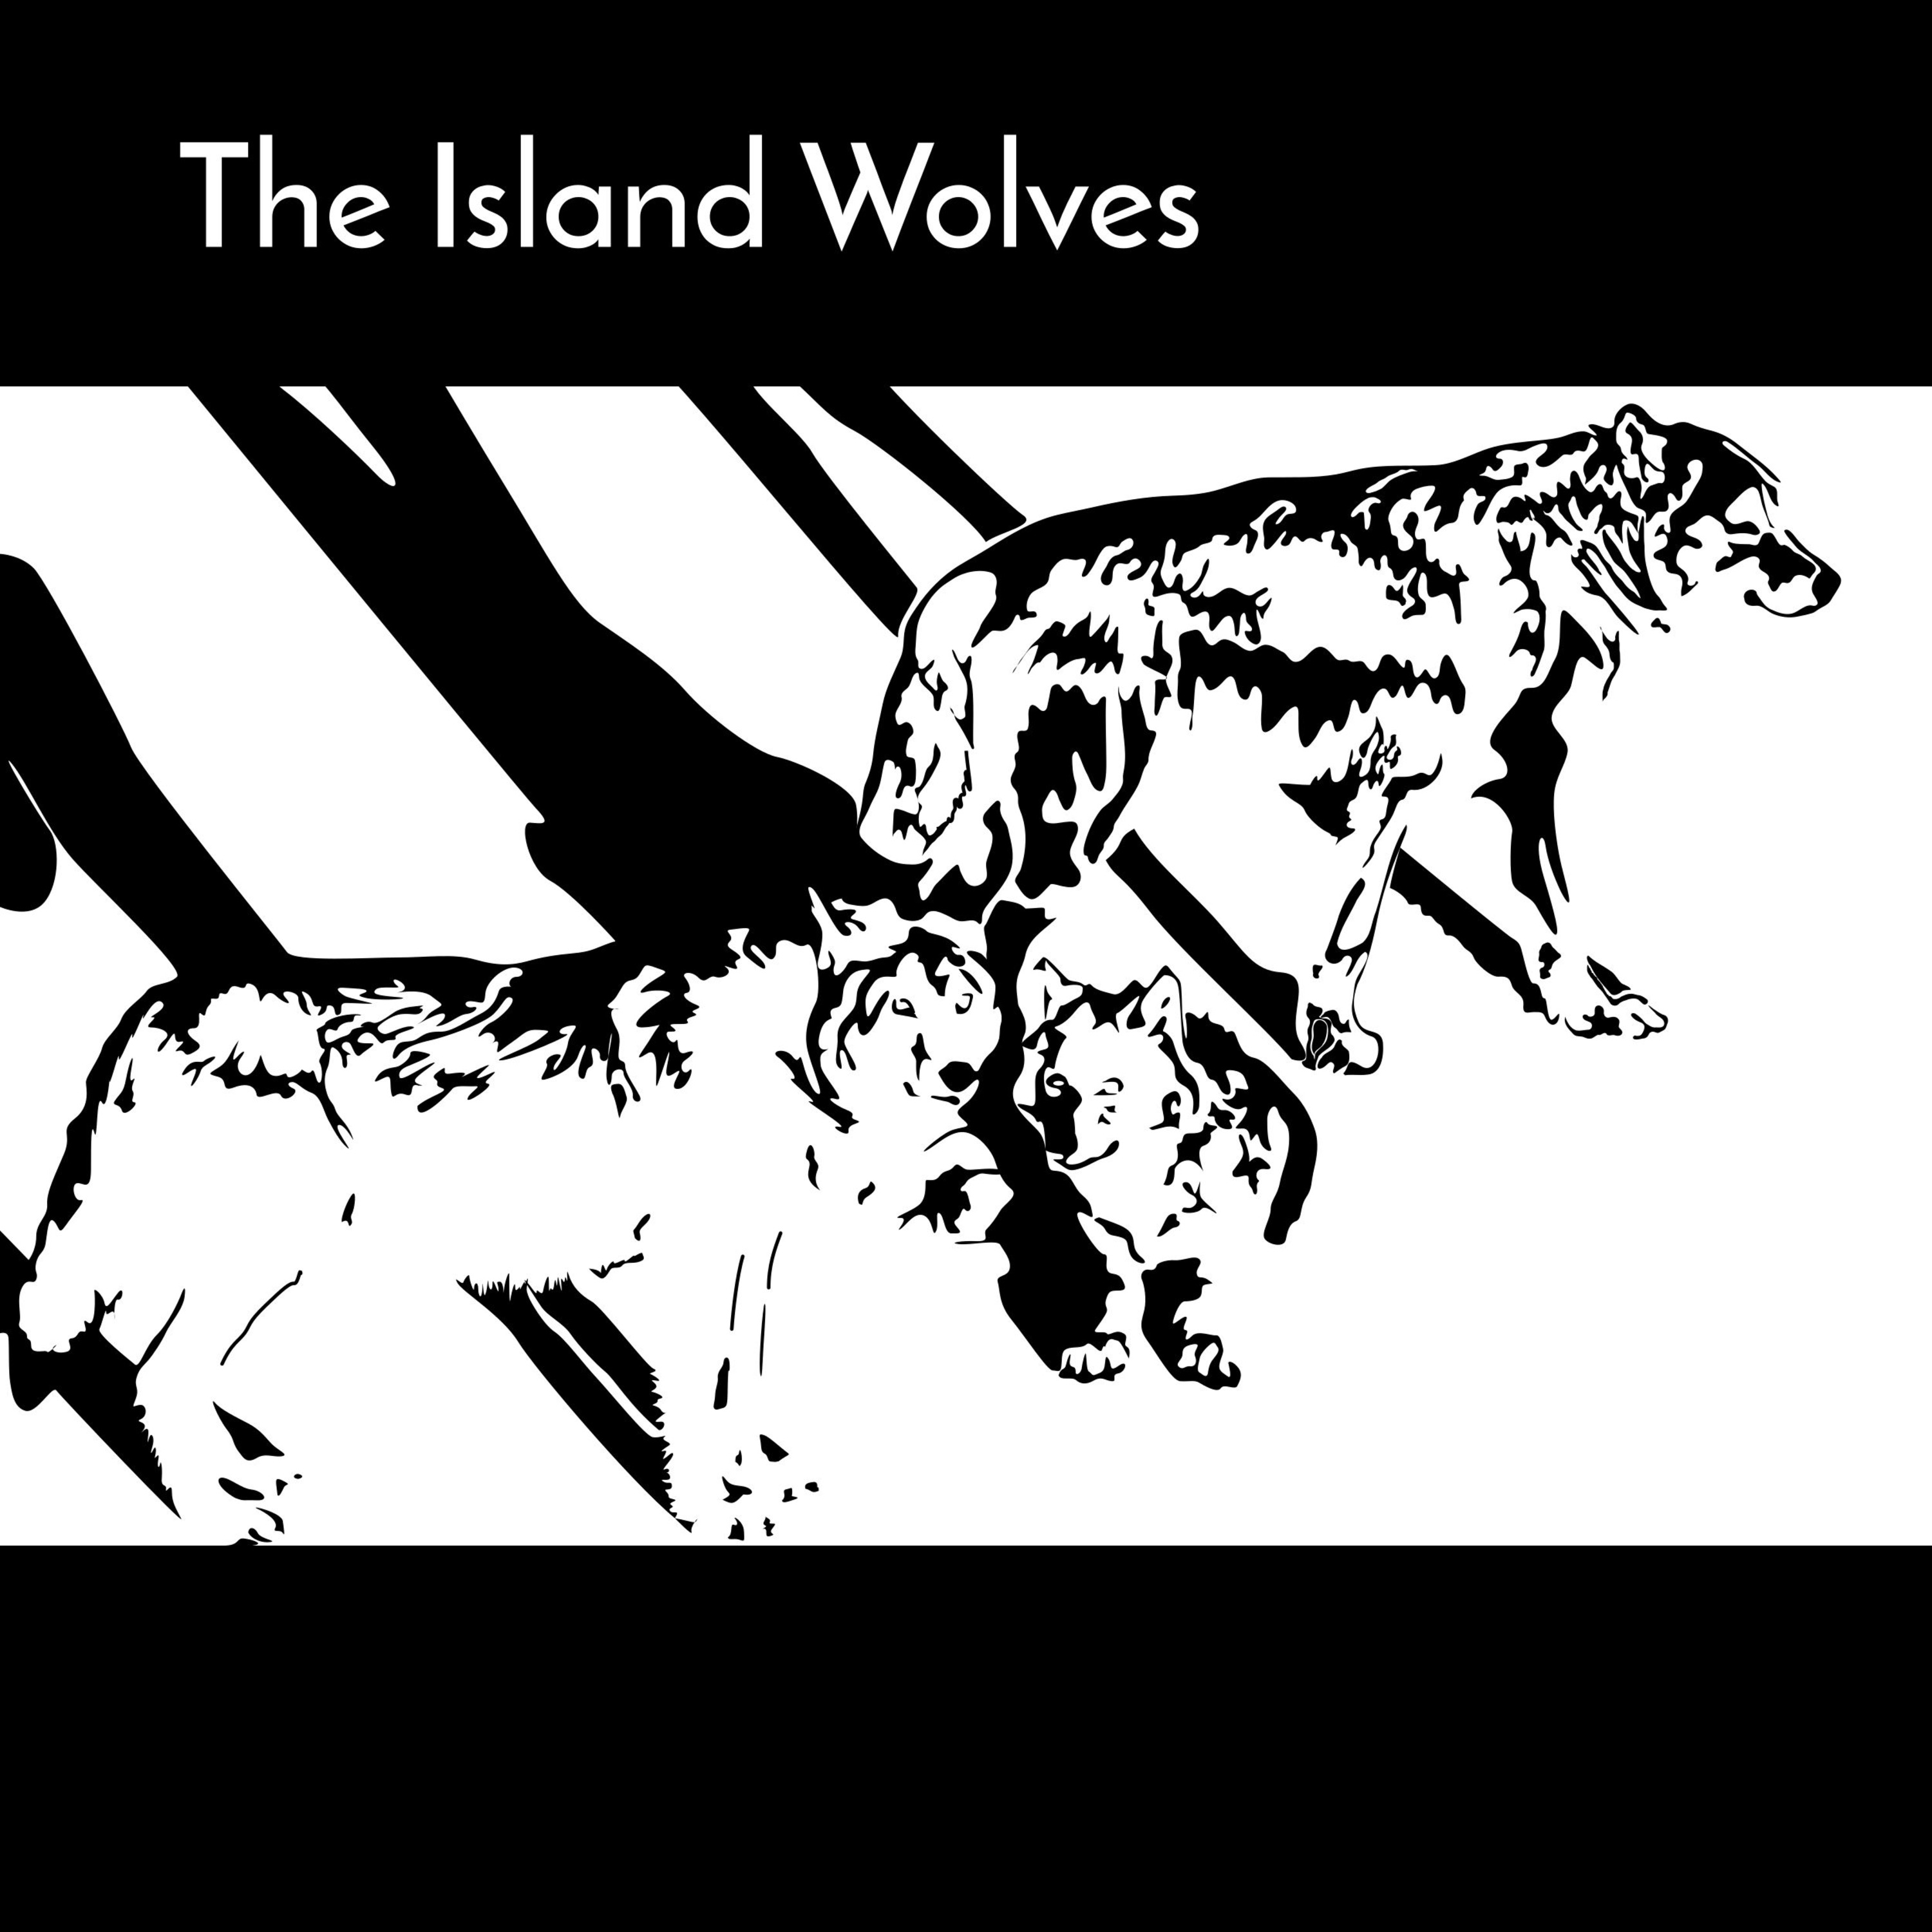 The Island Wolves